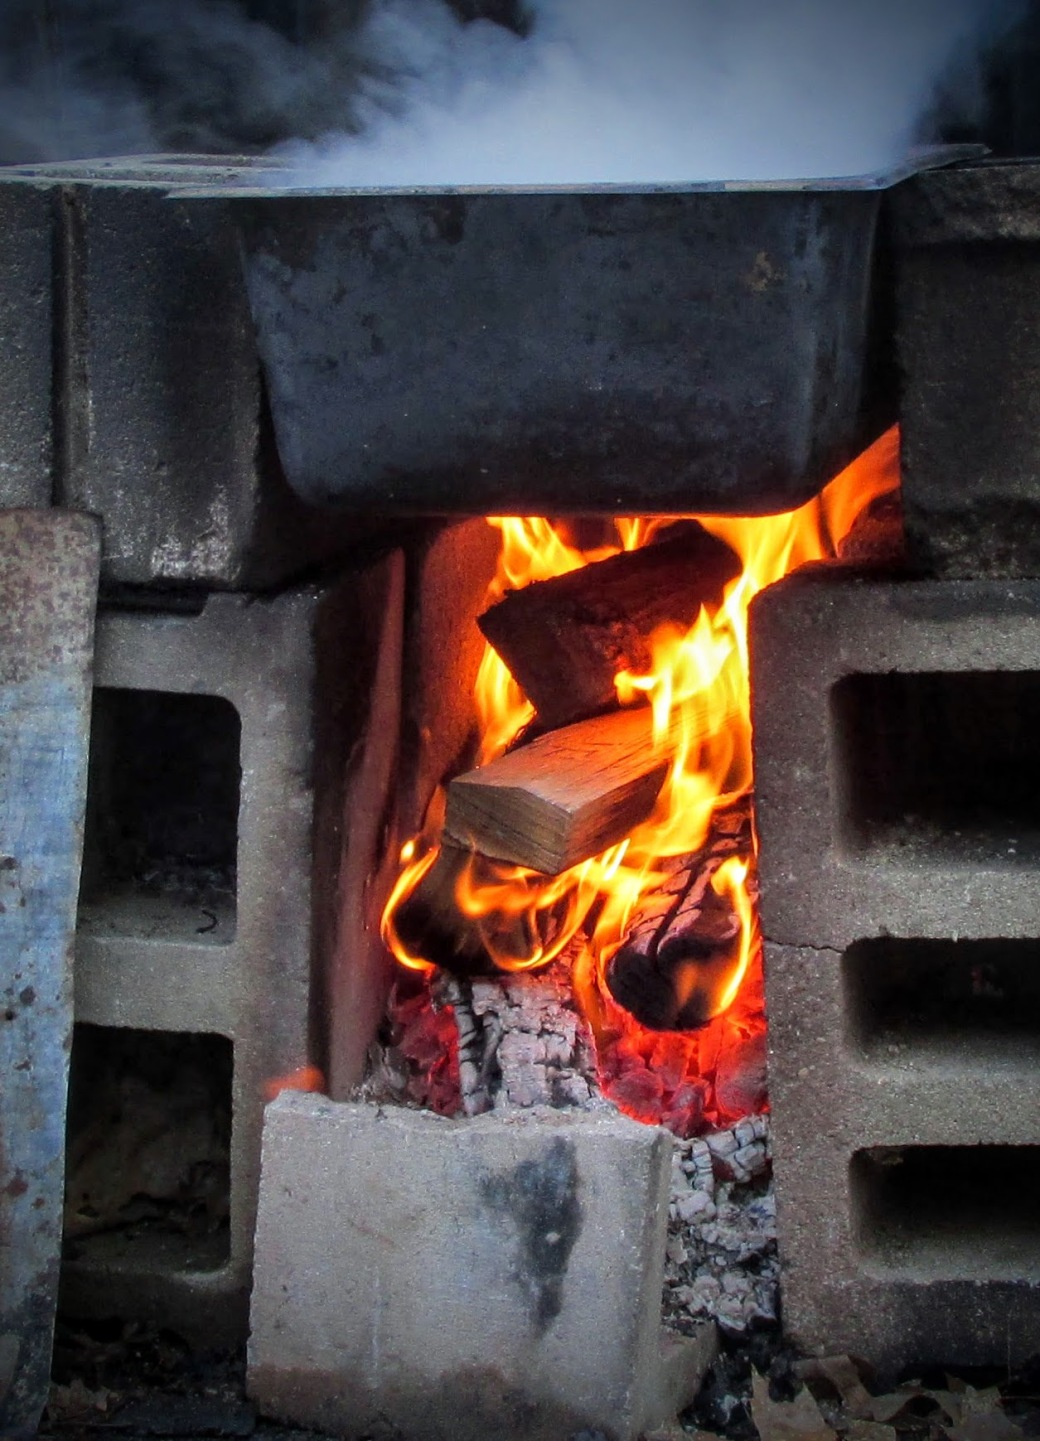 hot fire for evaporating maple sap for maple syrup over open fire without too much smoky flavor